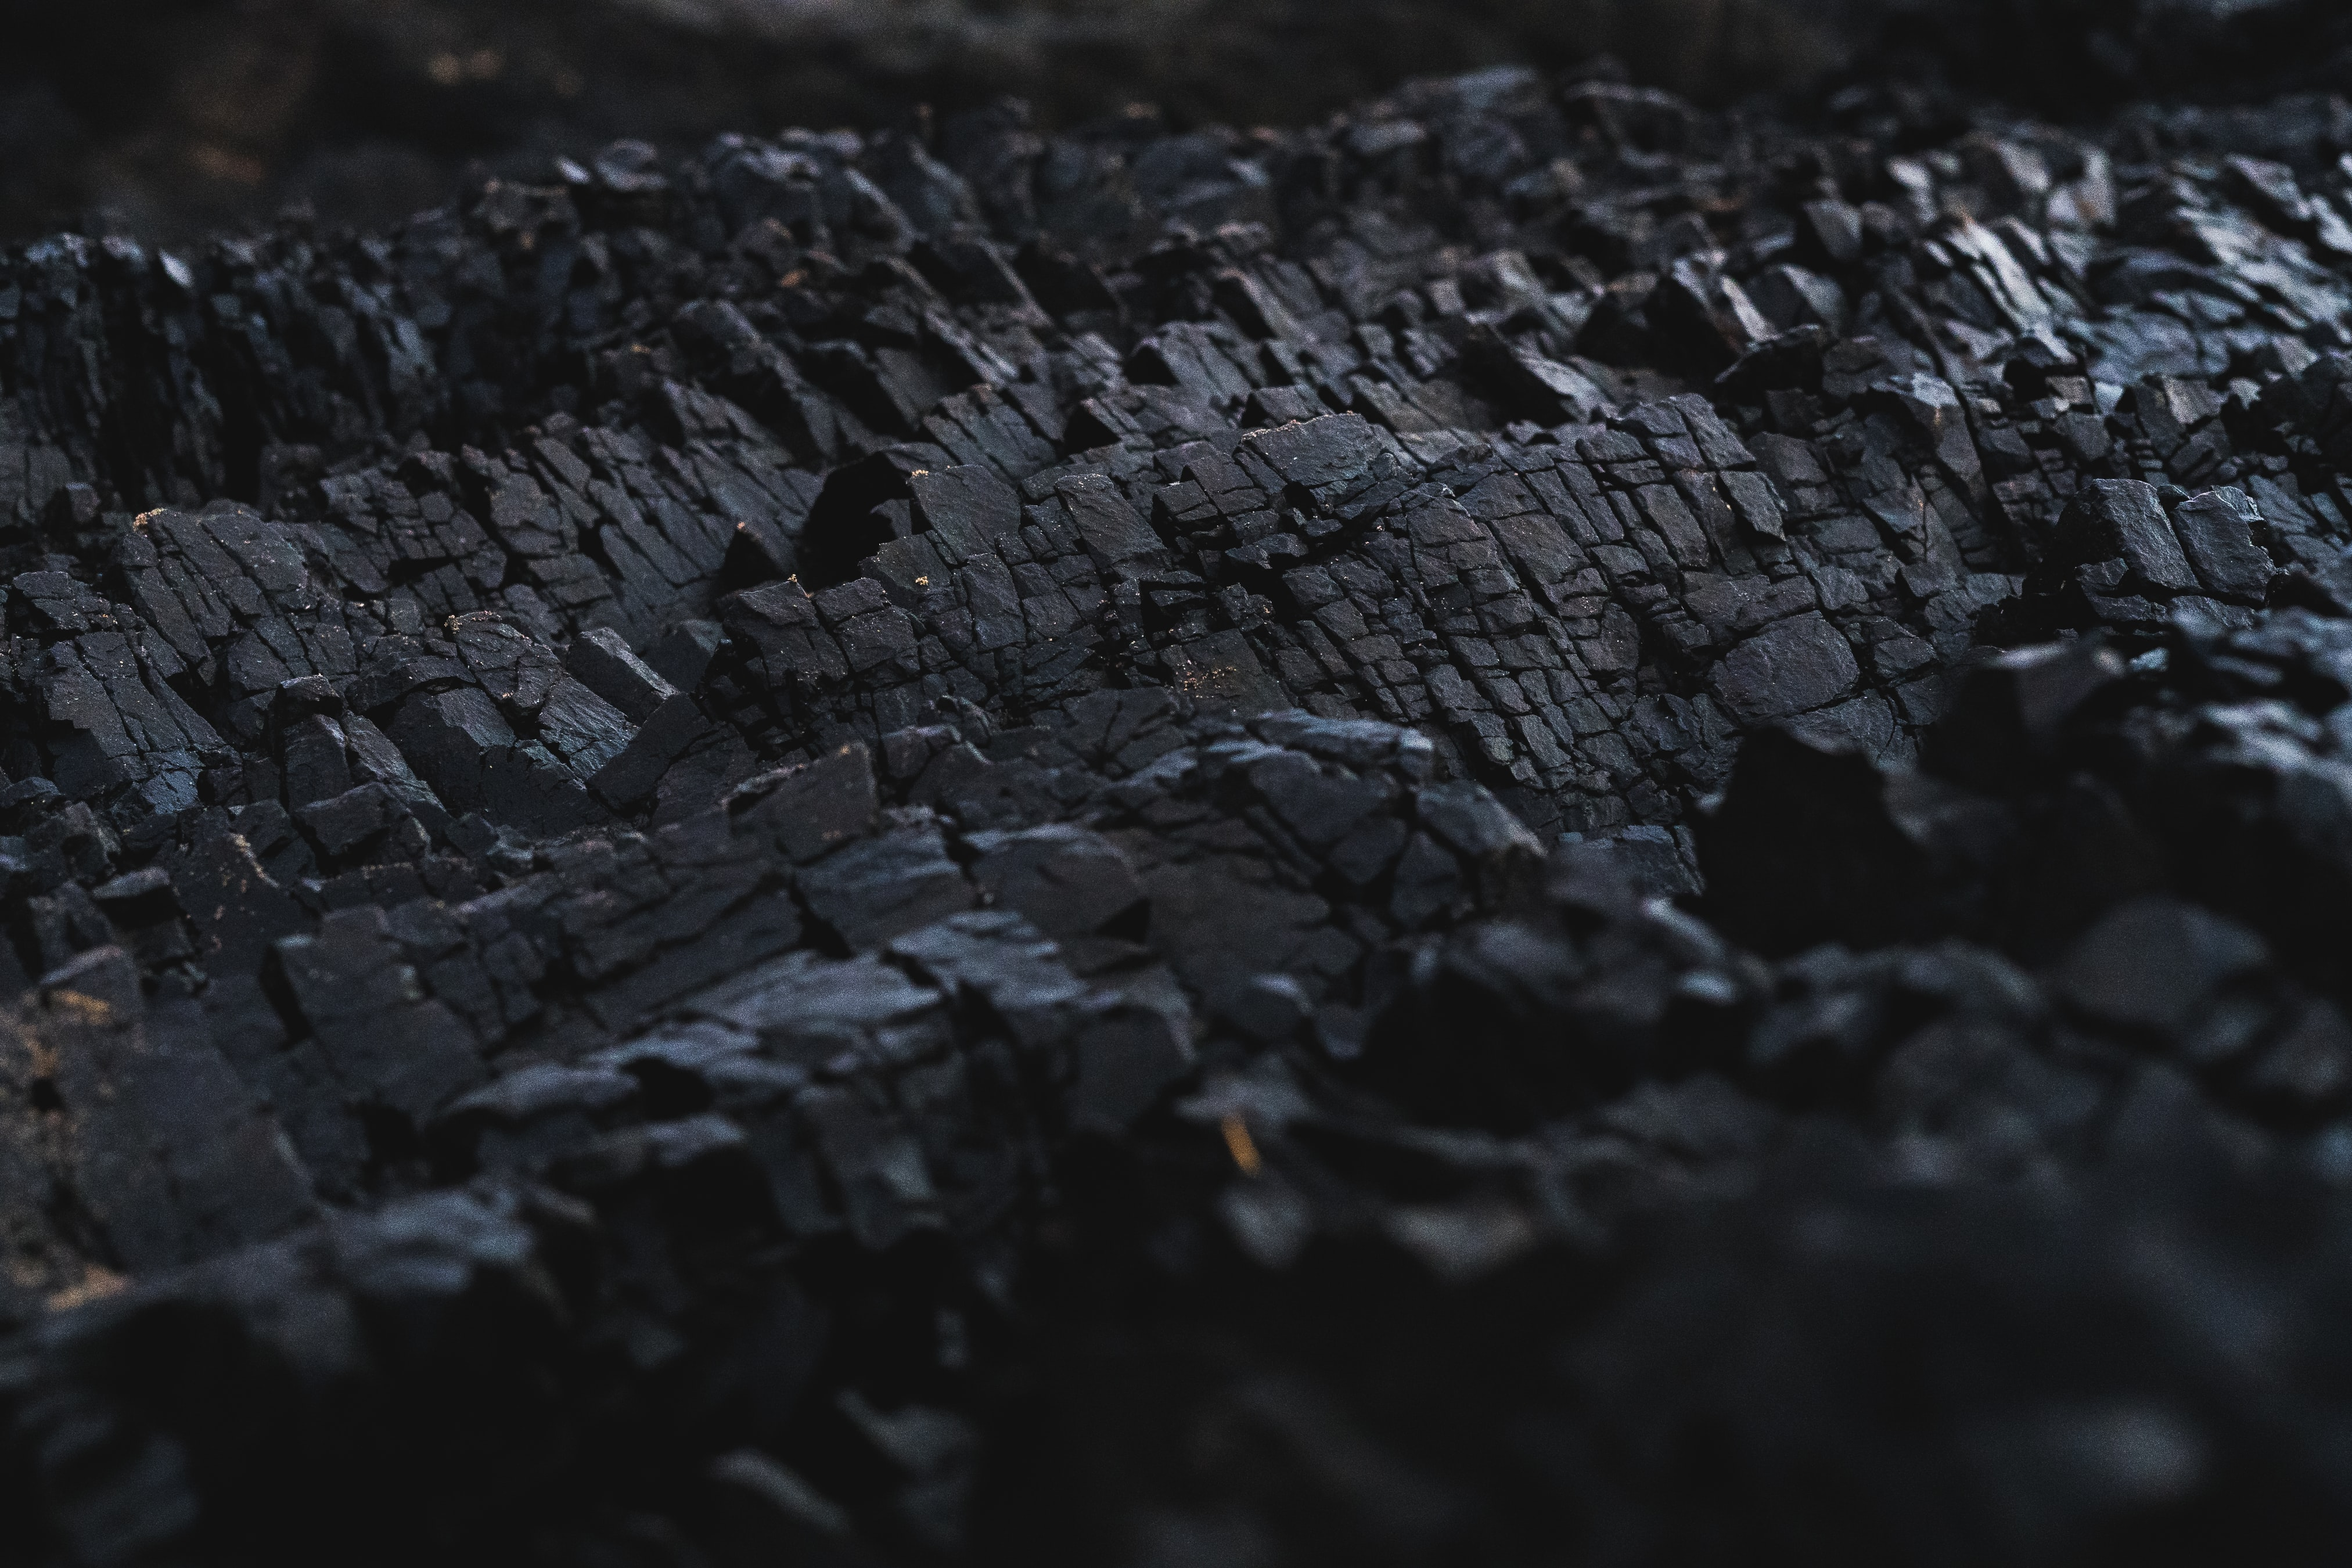 image of mined coal from Queensland mine Byerwen for the harland resources news page